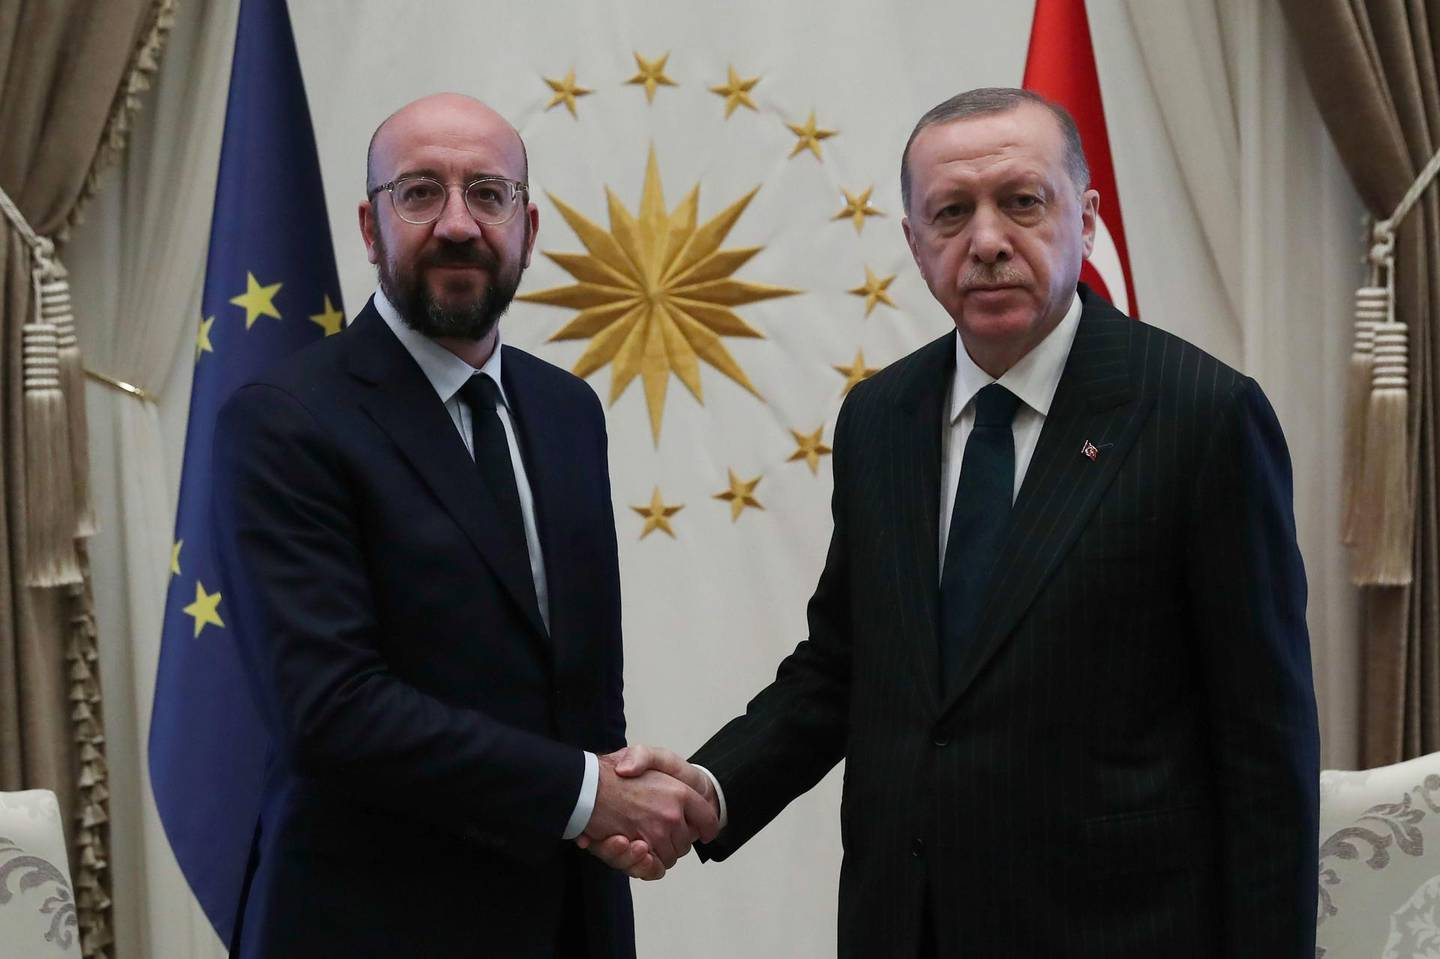 """A handout picture taken and released by the Turkish presidential press office shows Turkey's President Recep Tayyip Erdogan (R) shaking hands with European Council's President Charles Michel (L) at the Presidential Complex in Ankara, on March 4, 2020. EU foreign policy chief Josep Borrell and Council President Charles Michel met with Erdogan and other top officials in Ankara on Wednesday, promising an additional 170 million euros ($189 million) in aid for vulnerable groups in Syria.  - RESTRICTED TO EDITORIAL USE - MANDATORY CREDIT """"AFP PHOTO / TURKISH PRESIDENTIAL PRESS SERVICE / MURAT CETINMUHURDAR """" - NO MARKETING NO ADVERTISING CAMPAIGNS - DISTRIBUTED AS A SERVICE TO CLIENTS  / AFP / TURKISH PRESIDENTIAL PRESS SERVICE / Murat CETINMUHURDAR / RESTRICTED TO EDITORIAL USE - MANDATORY CREDIT """"AFP PHOTO / TURKISH PRESIDENTIAL PRESS SERVICE / MURAT CETINMUHURDAR """" - NO MARKETING NO ADVERTISING CAMPAIGNS - DISTRIBUTED AS A SERVICE TO CLIENTS"""